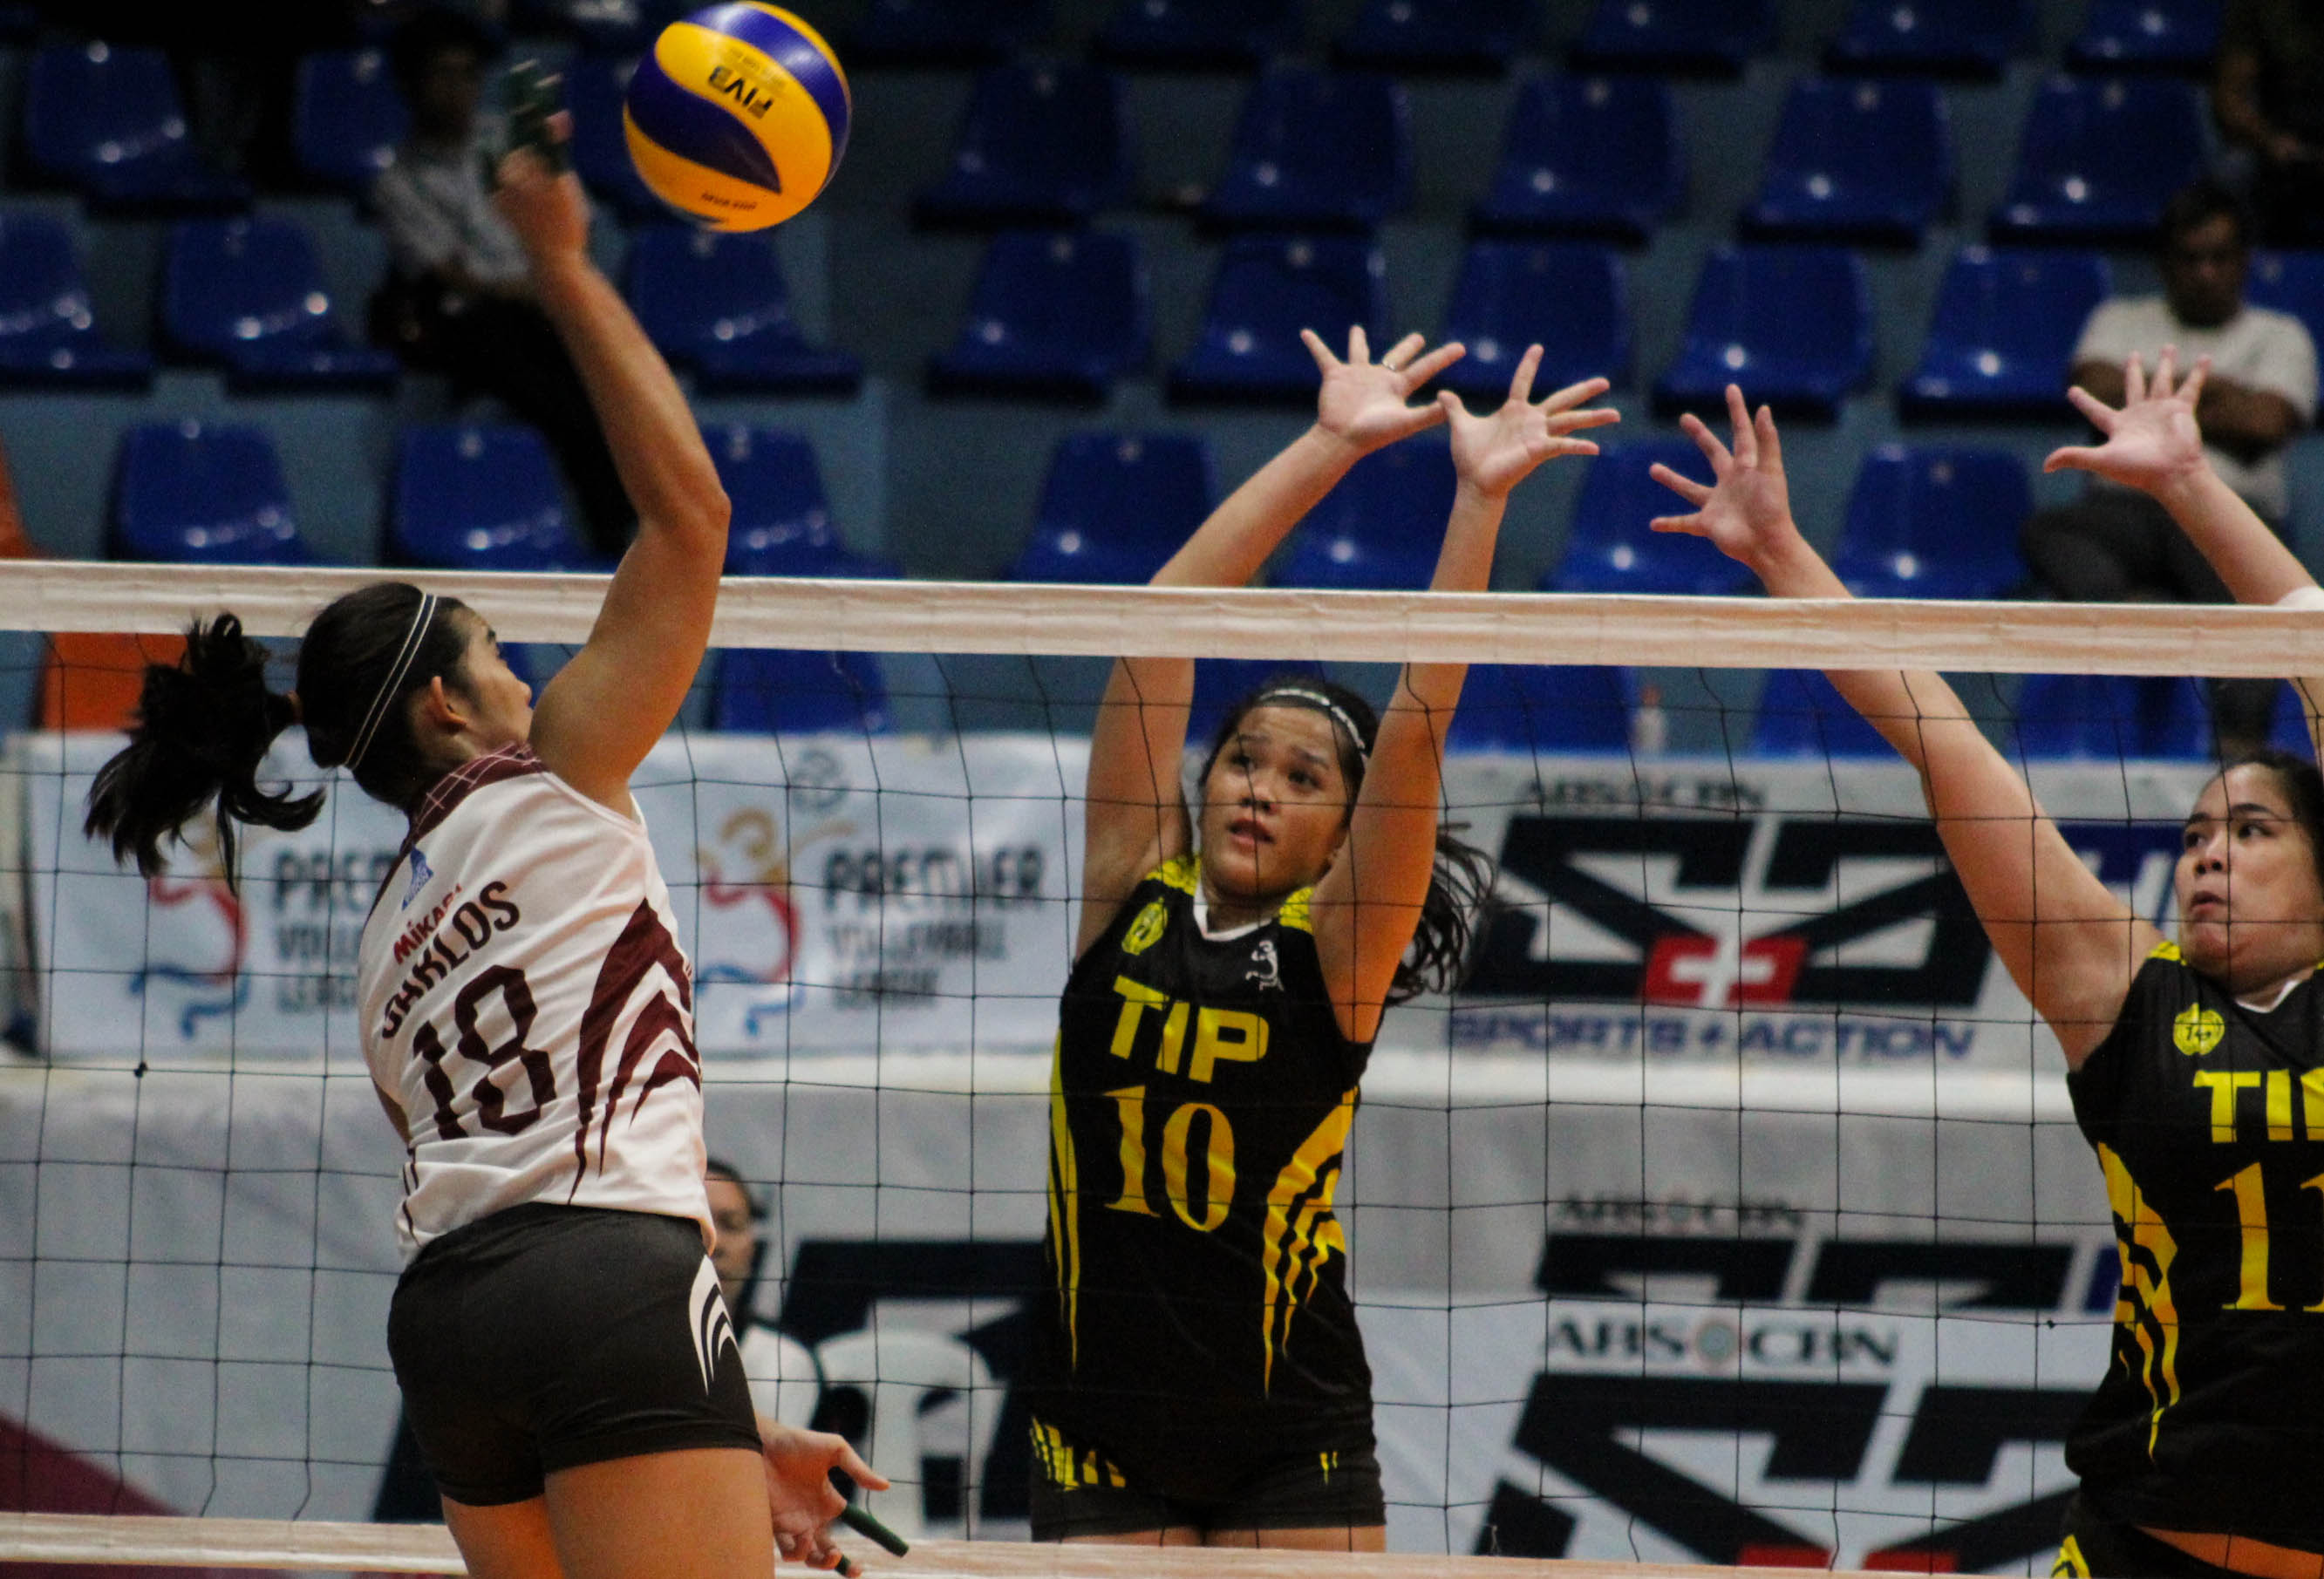 UP cruises past TIP for first win